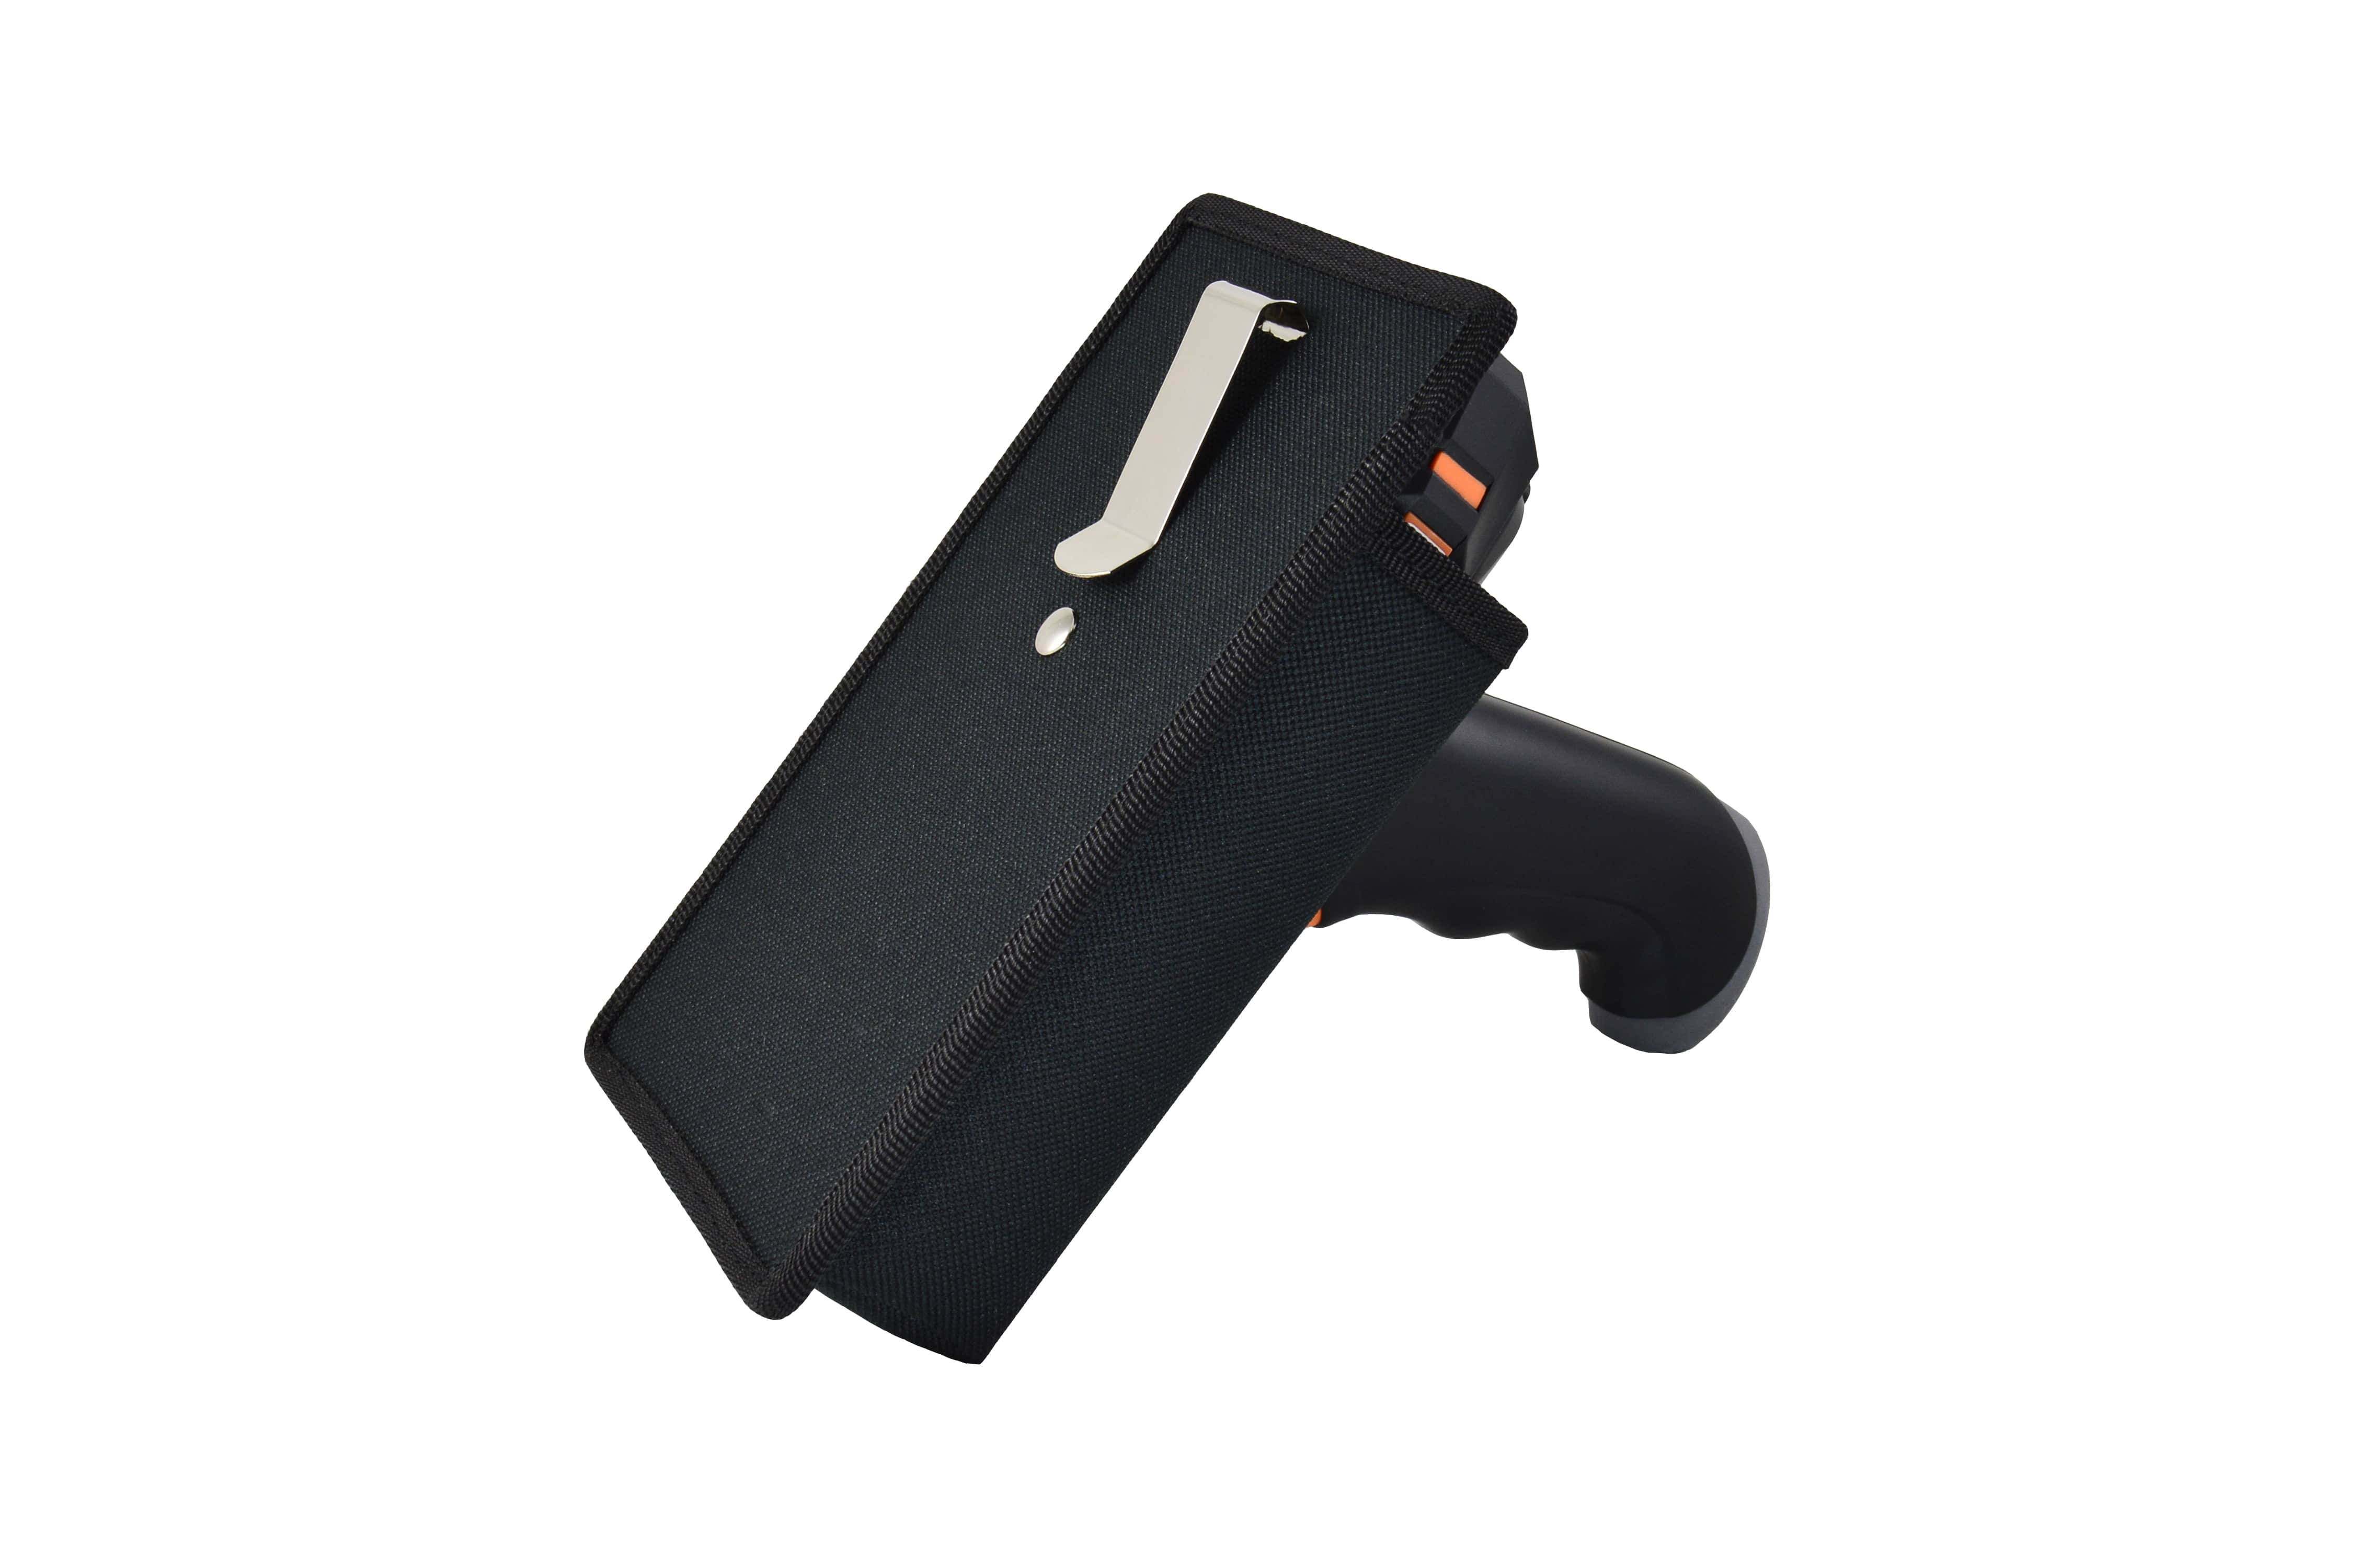 Holster Pistol Grip Carrying Case